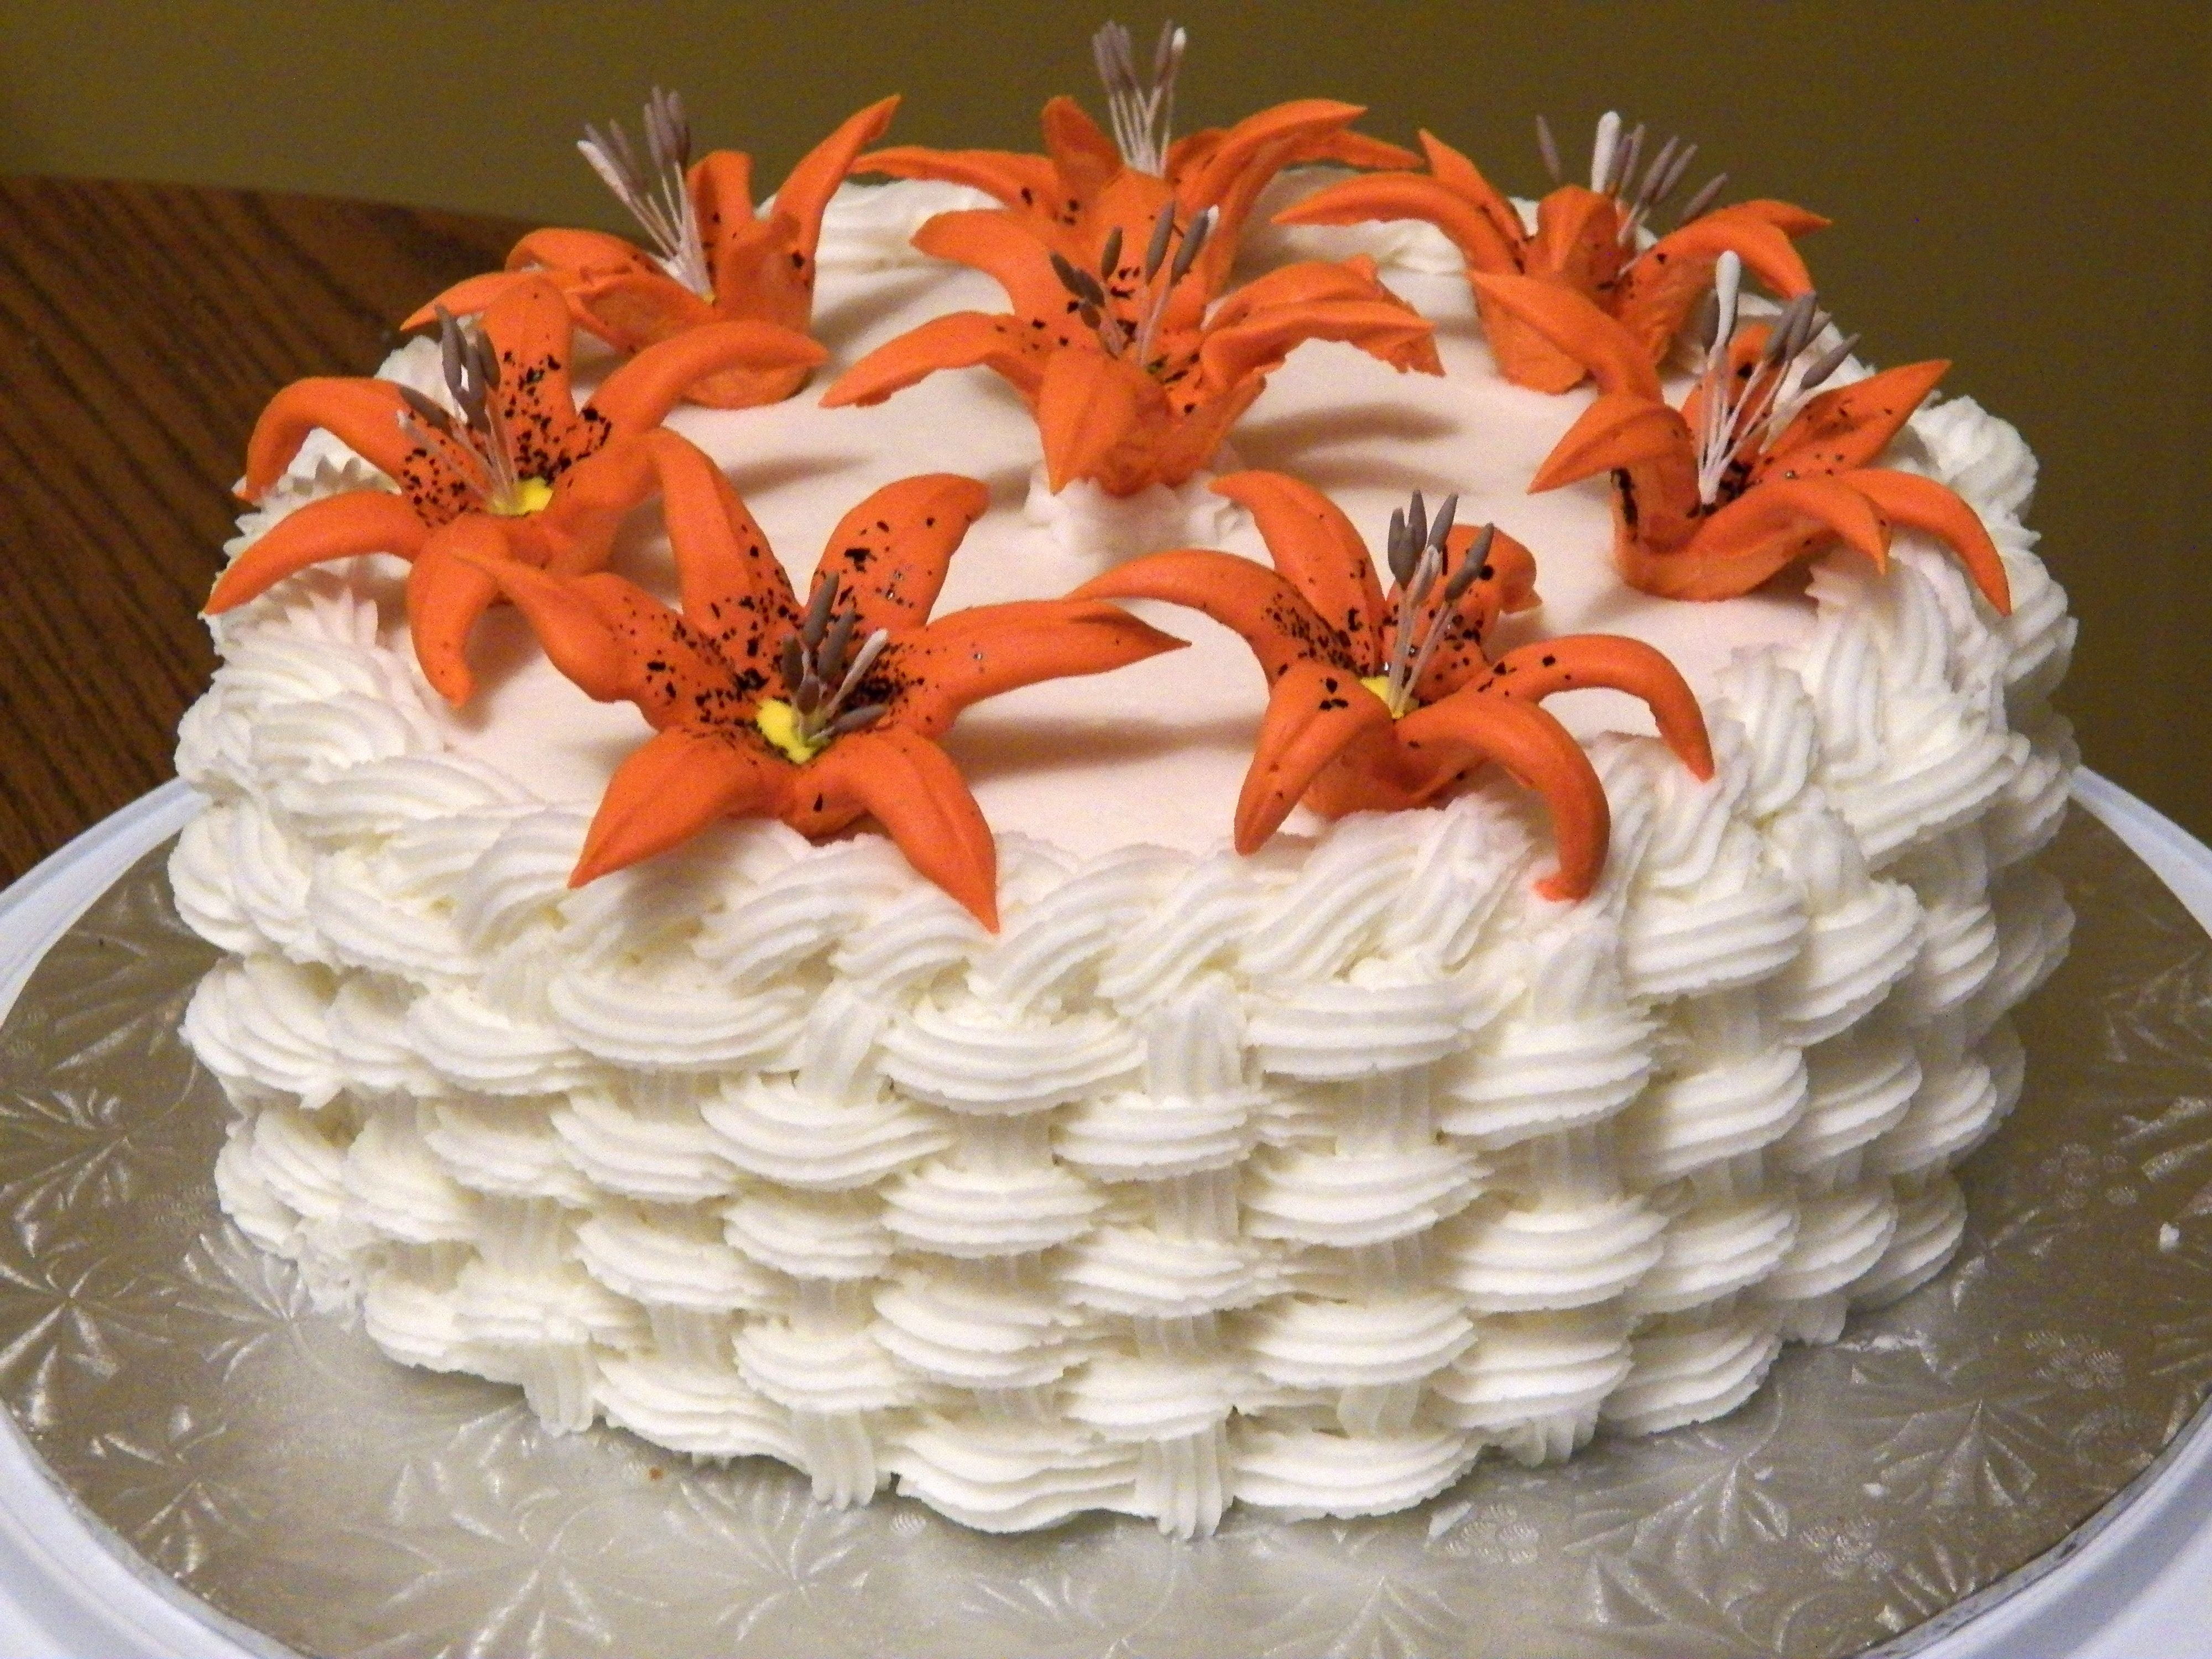 Wiltoncontest basket weave lily cake final cake wilton course 2 wiltoncontest basket weave lily cake final cake wilton course 2 flower cake izmirmasajfo Gallery